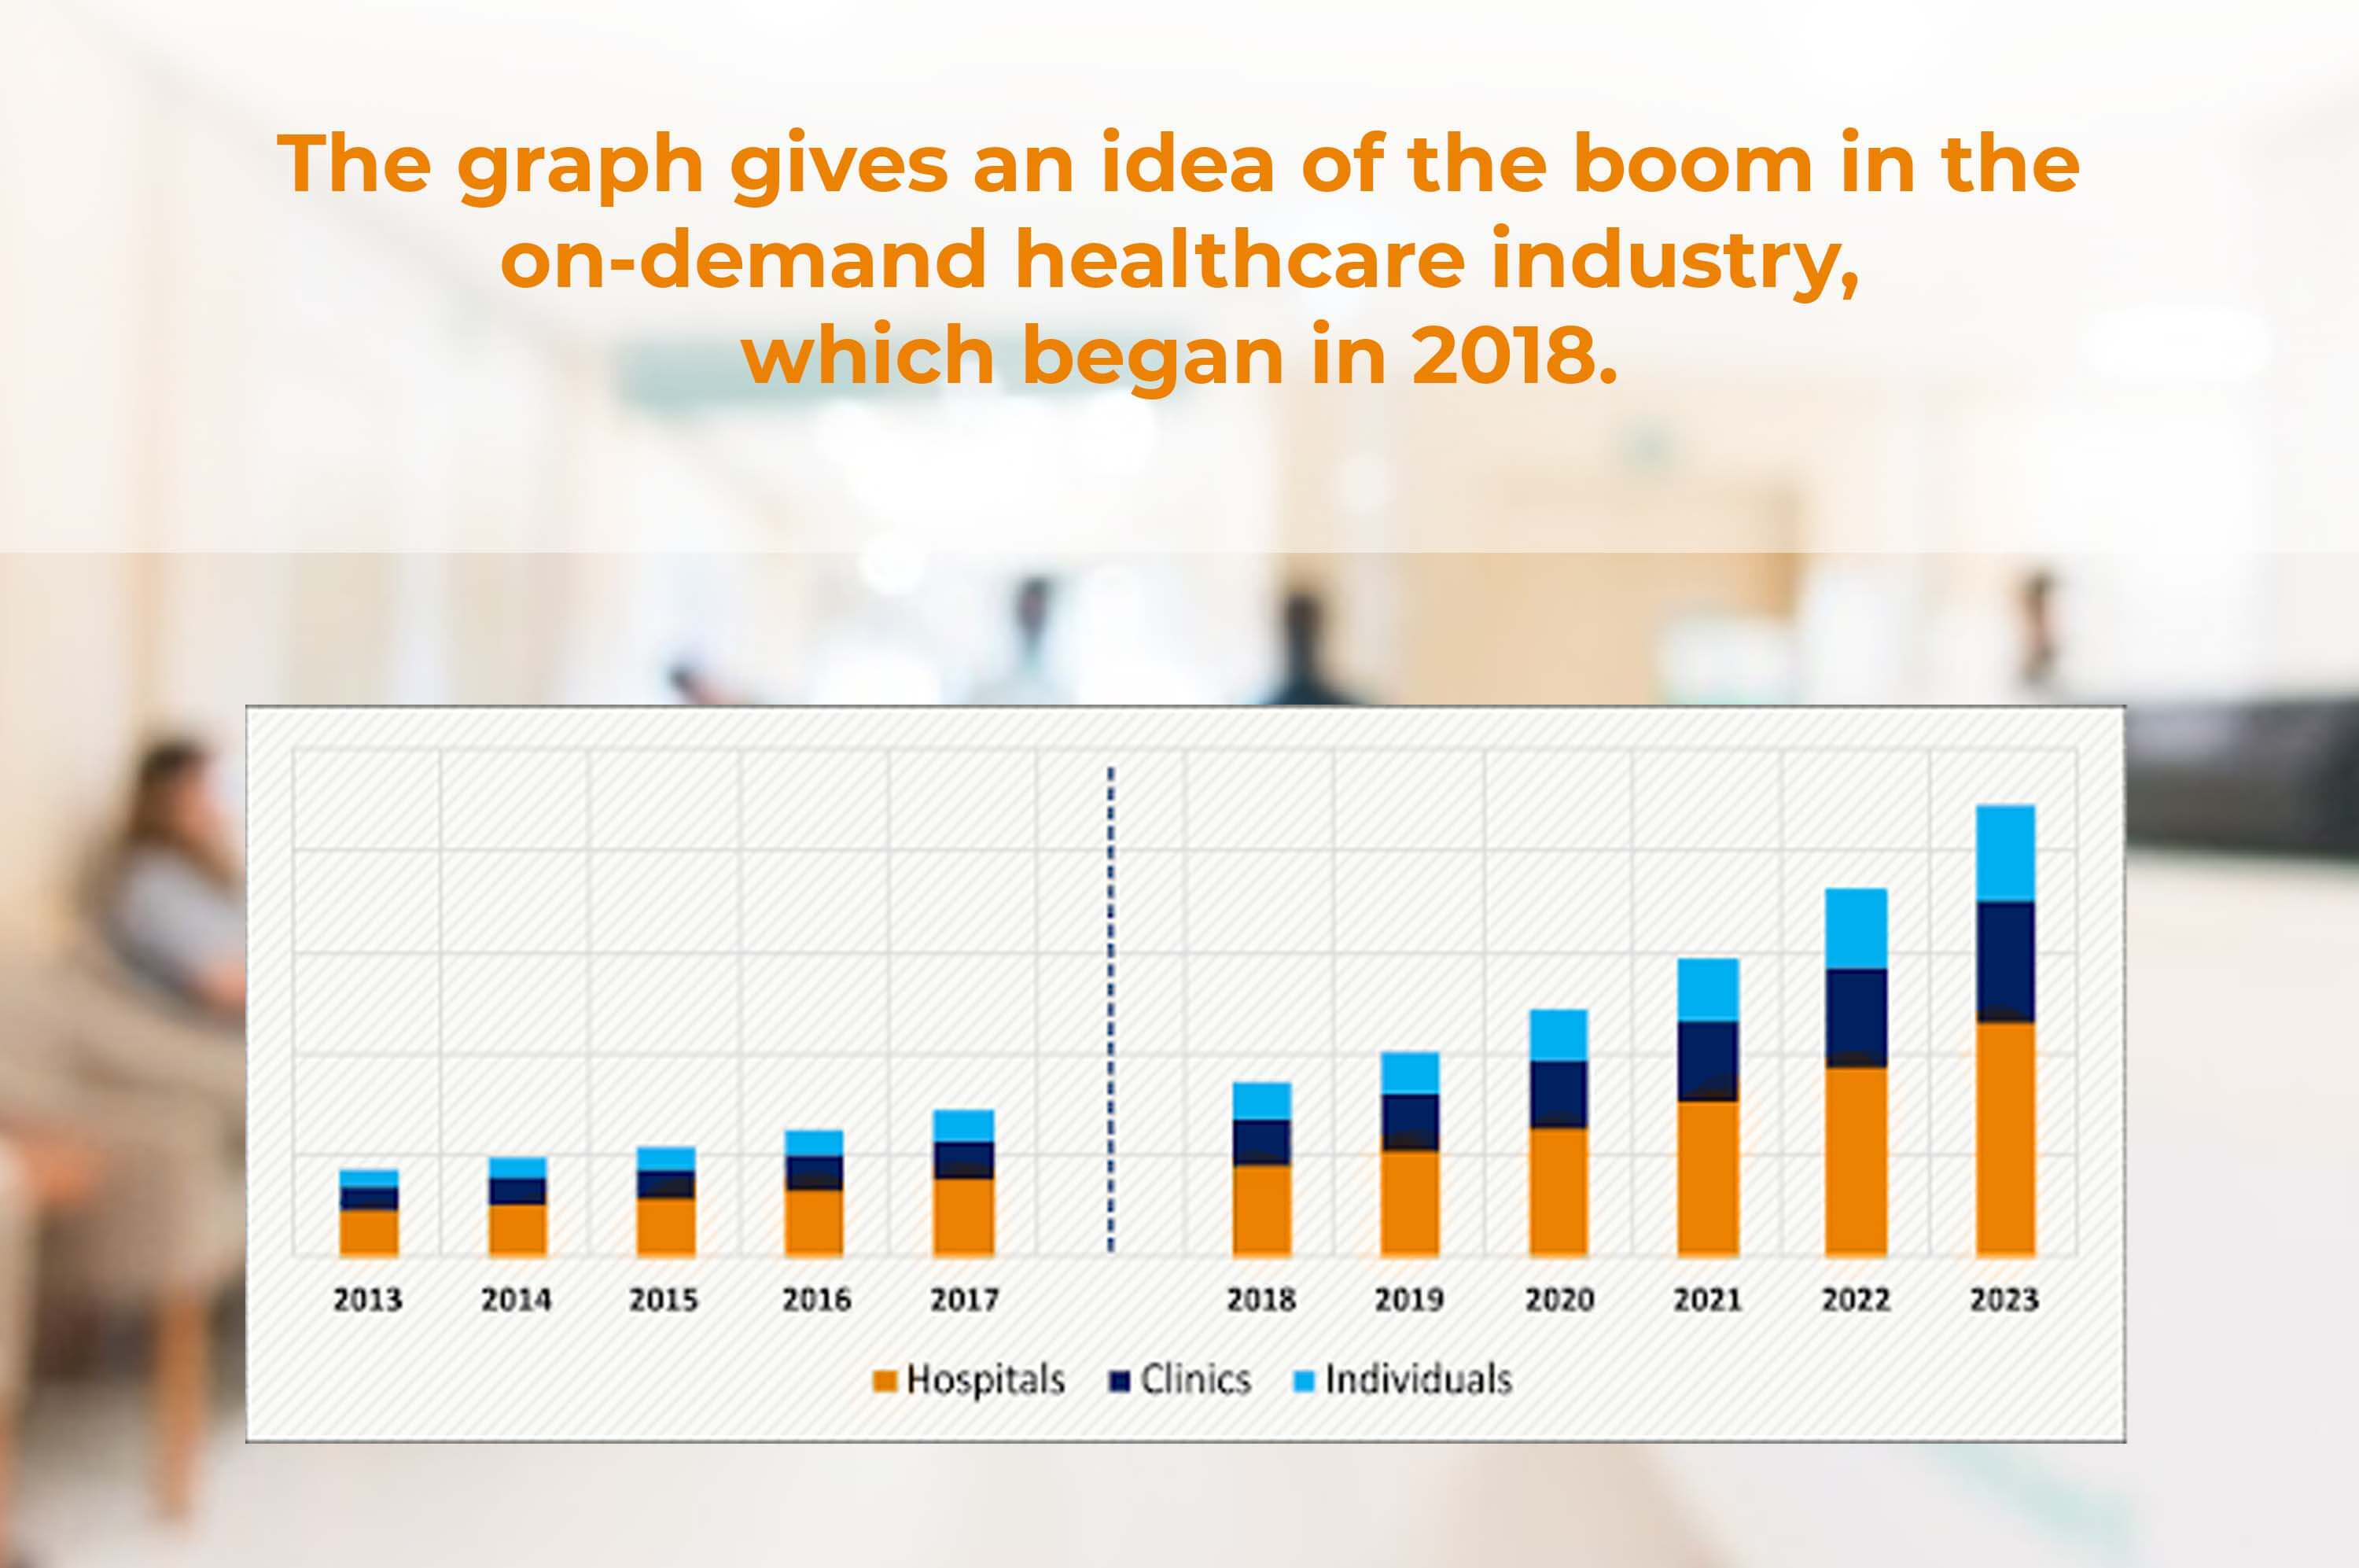 graph about the growth of on-demand health care industry